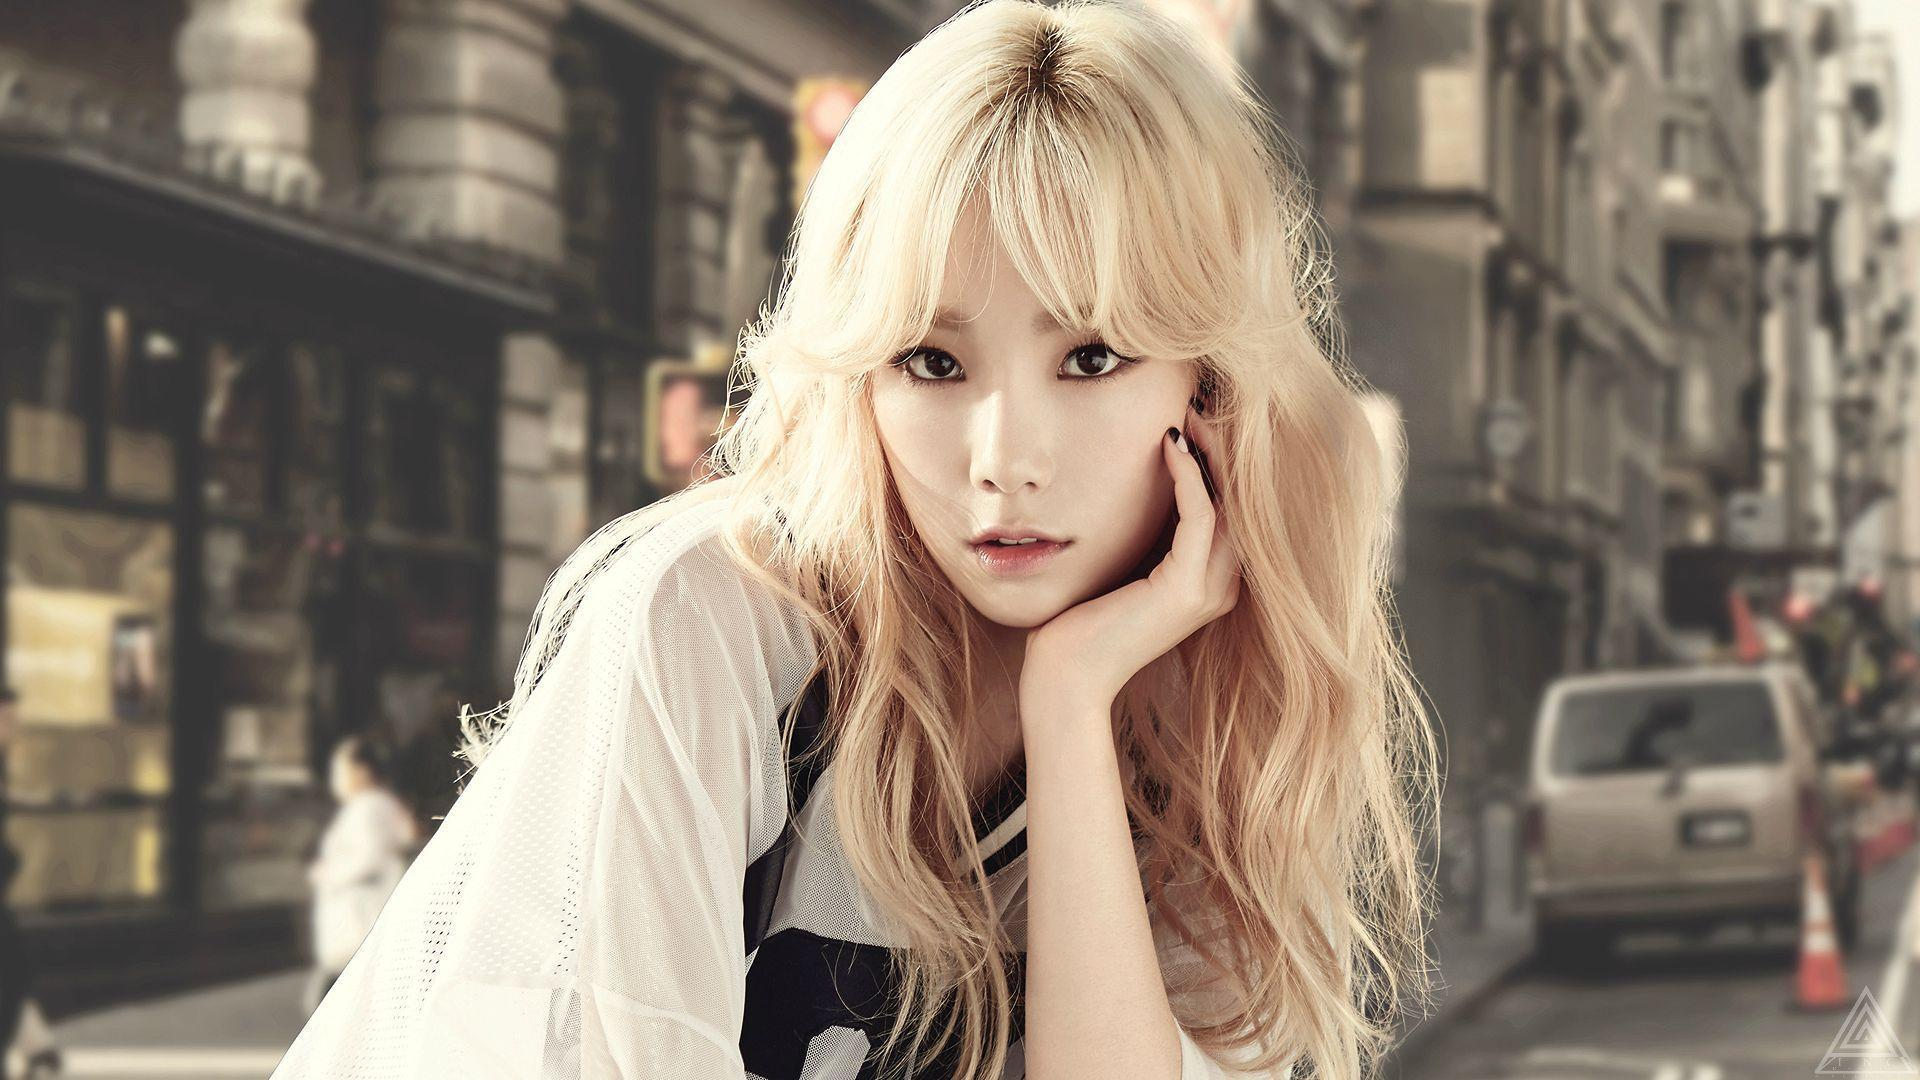 Kim Taeyeon Wallpapers 2016 - Wallpaper Cave